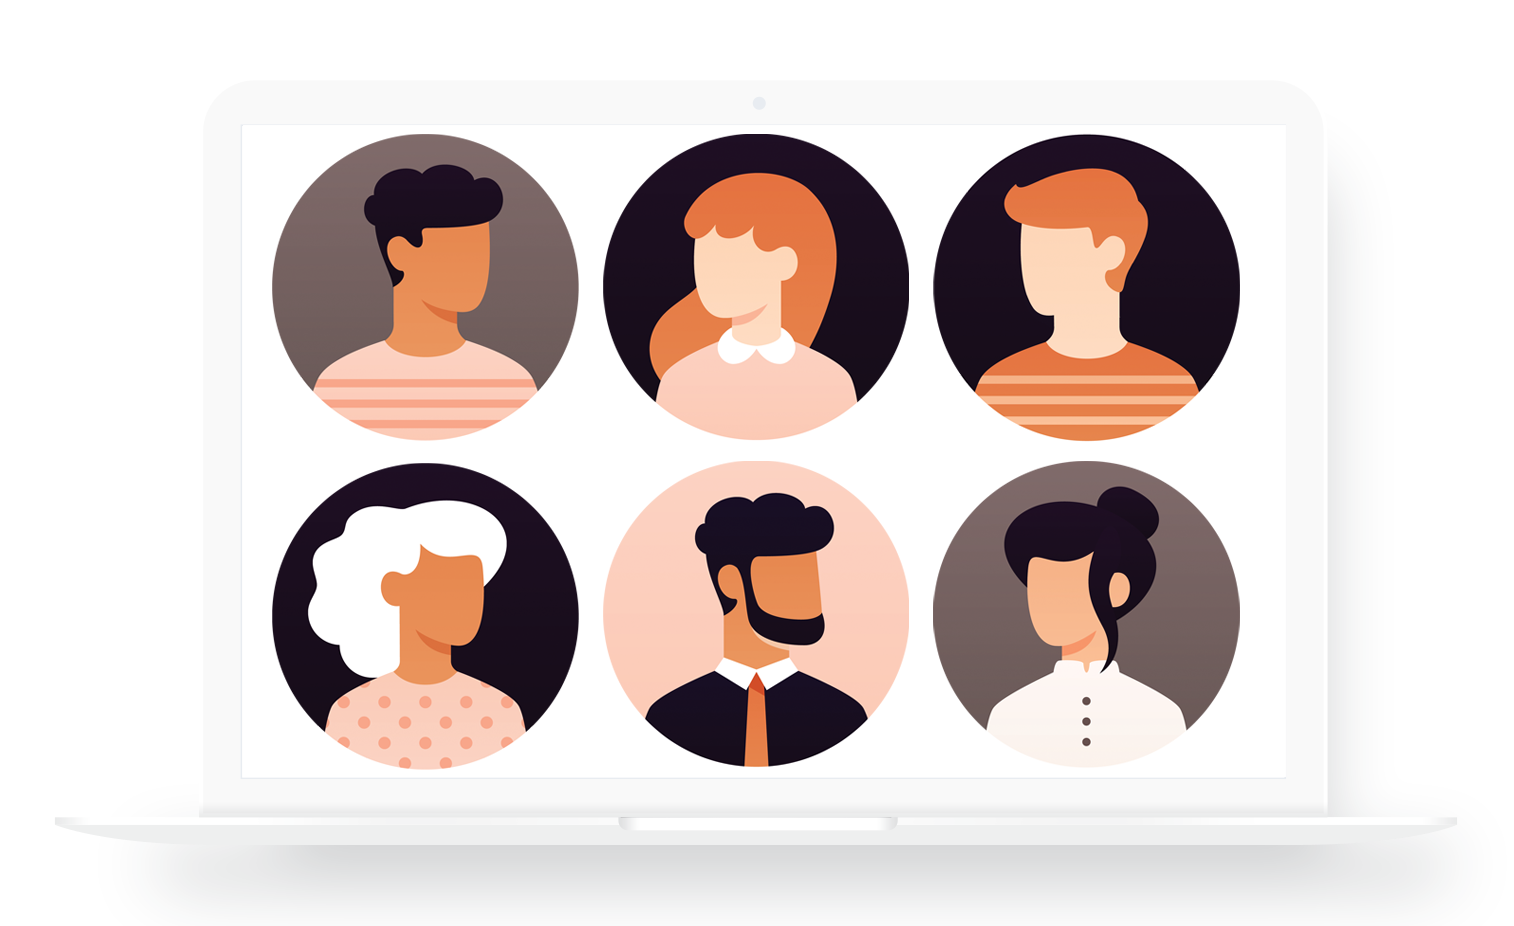 A happy group of remote worker avatars